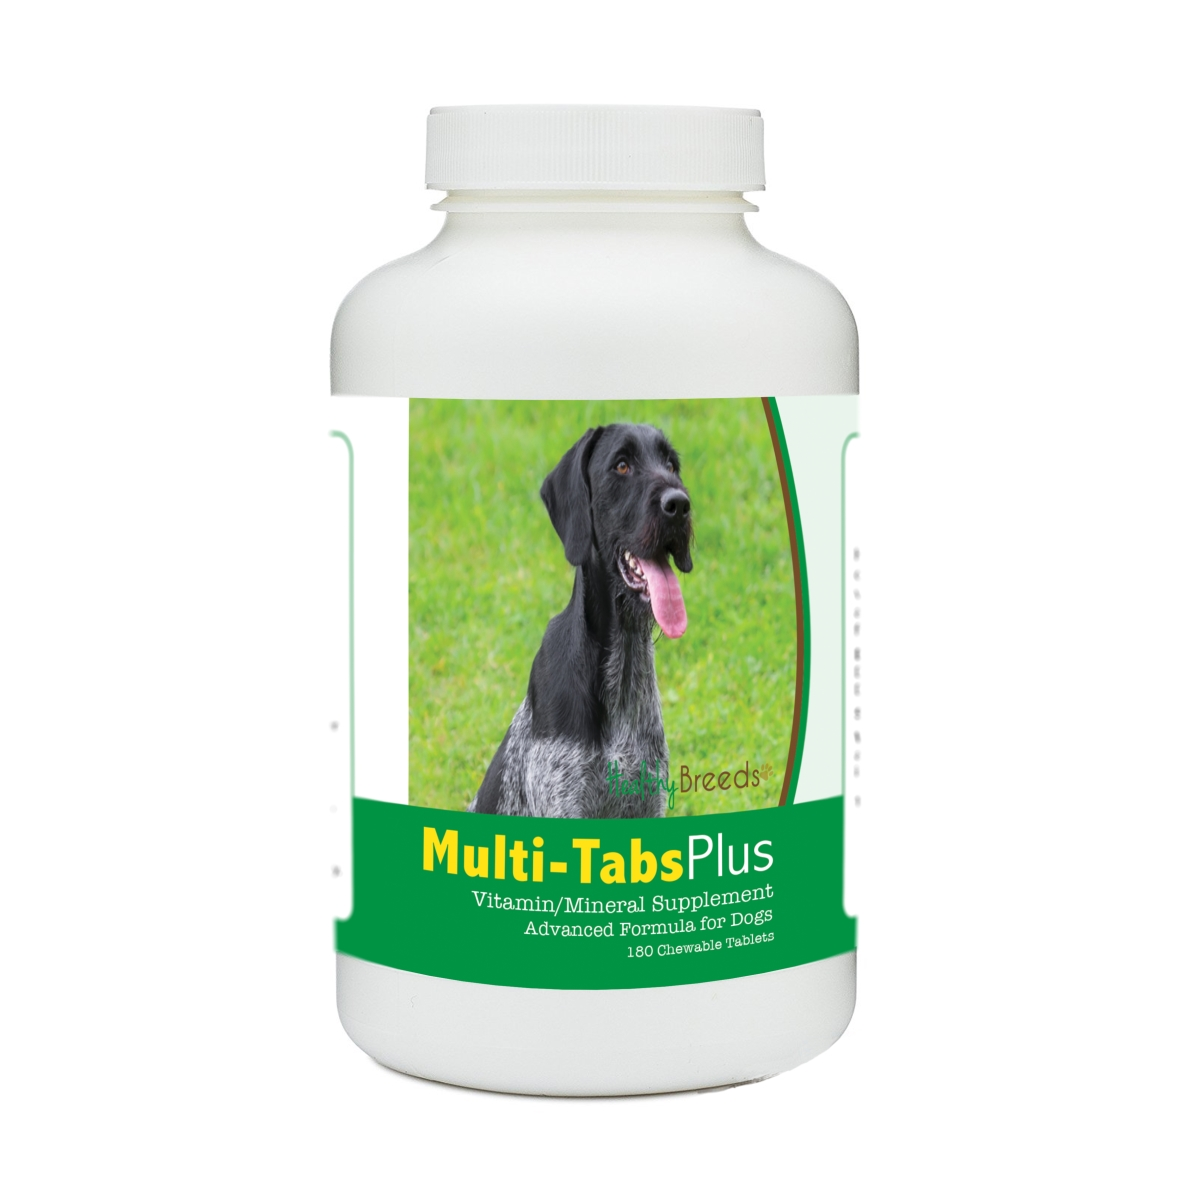 Healthy Breeds 840235140221 German Wirehaired Pointer Multi-Tabs Plus Chewable Tablets - 180 Count